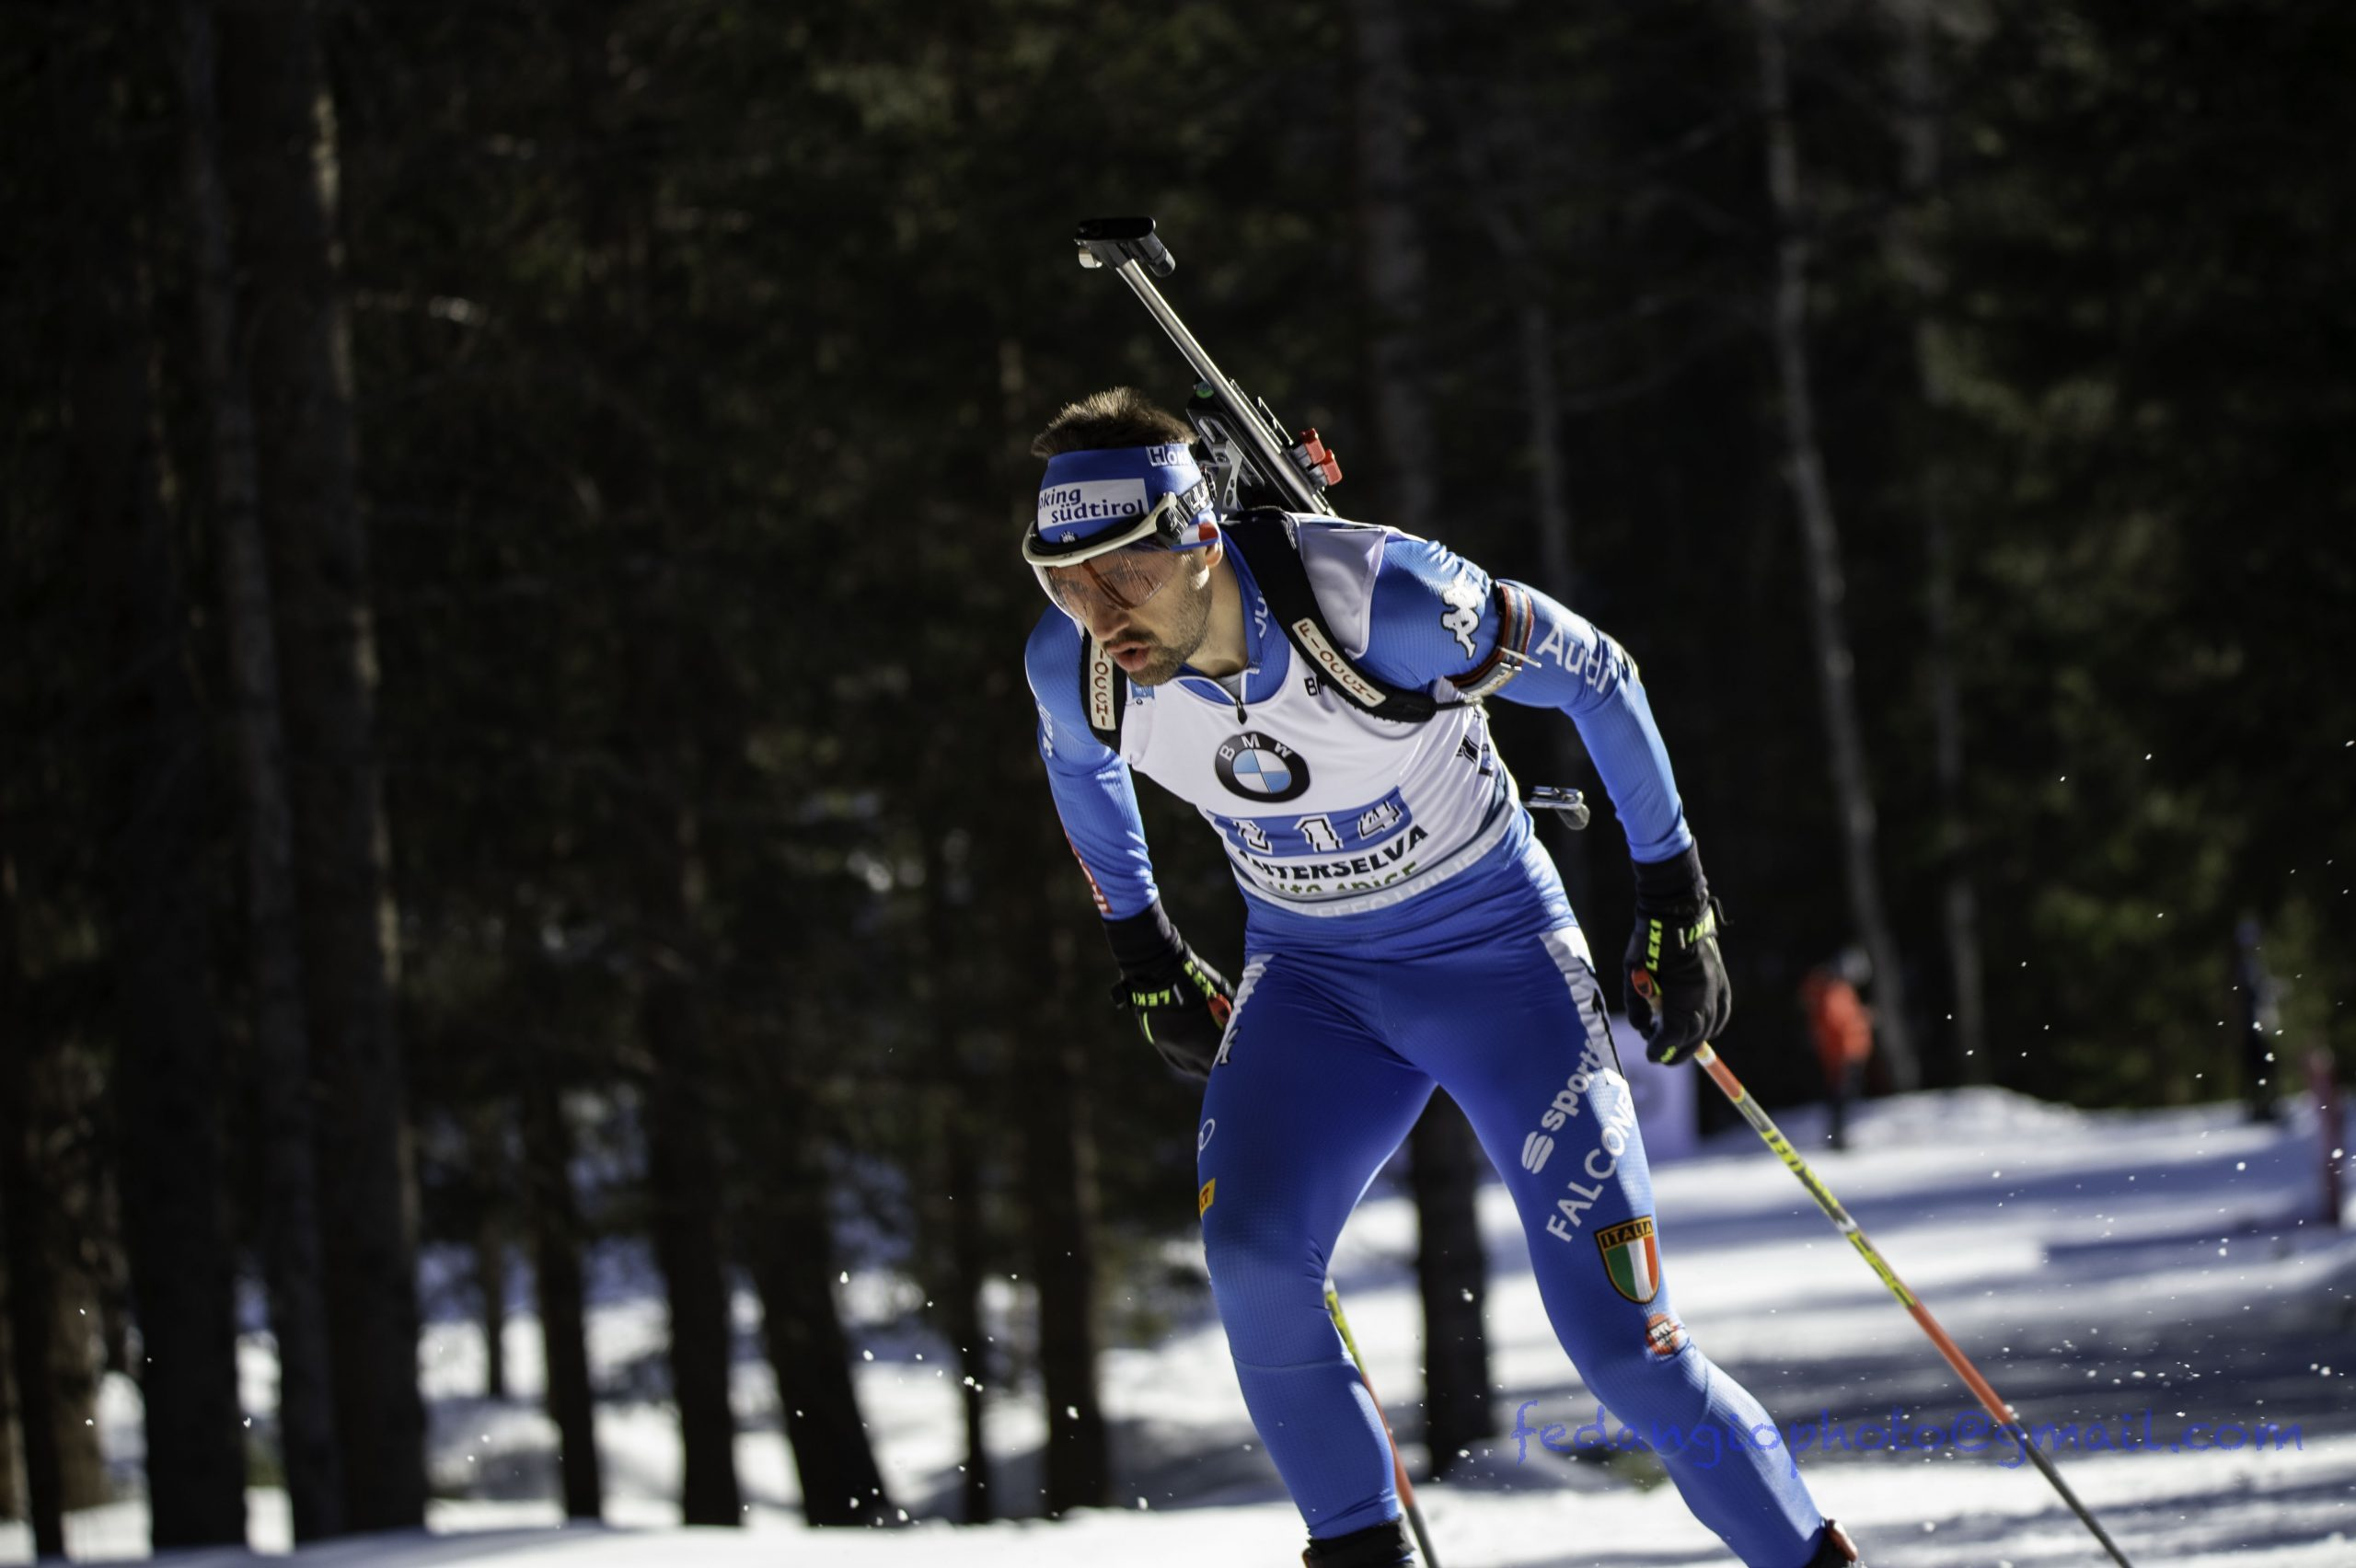 windisch-1-g-7-biathlon-scaled.jpg